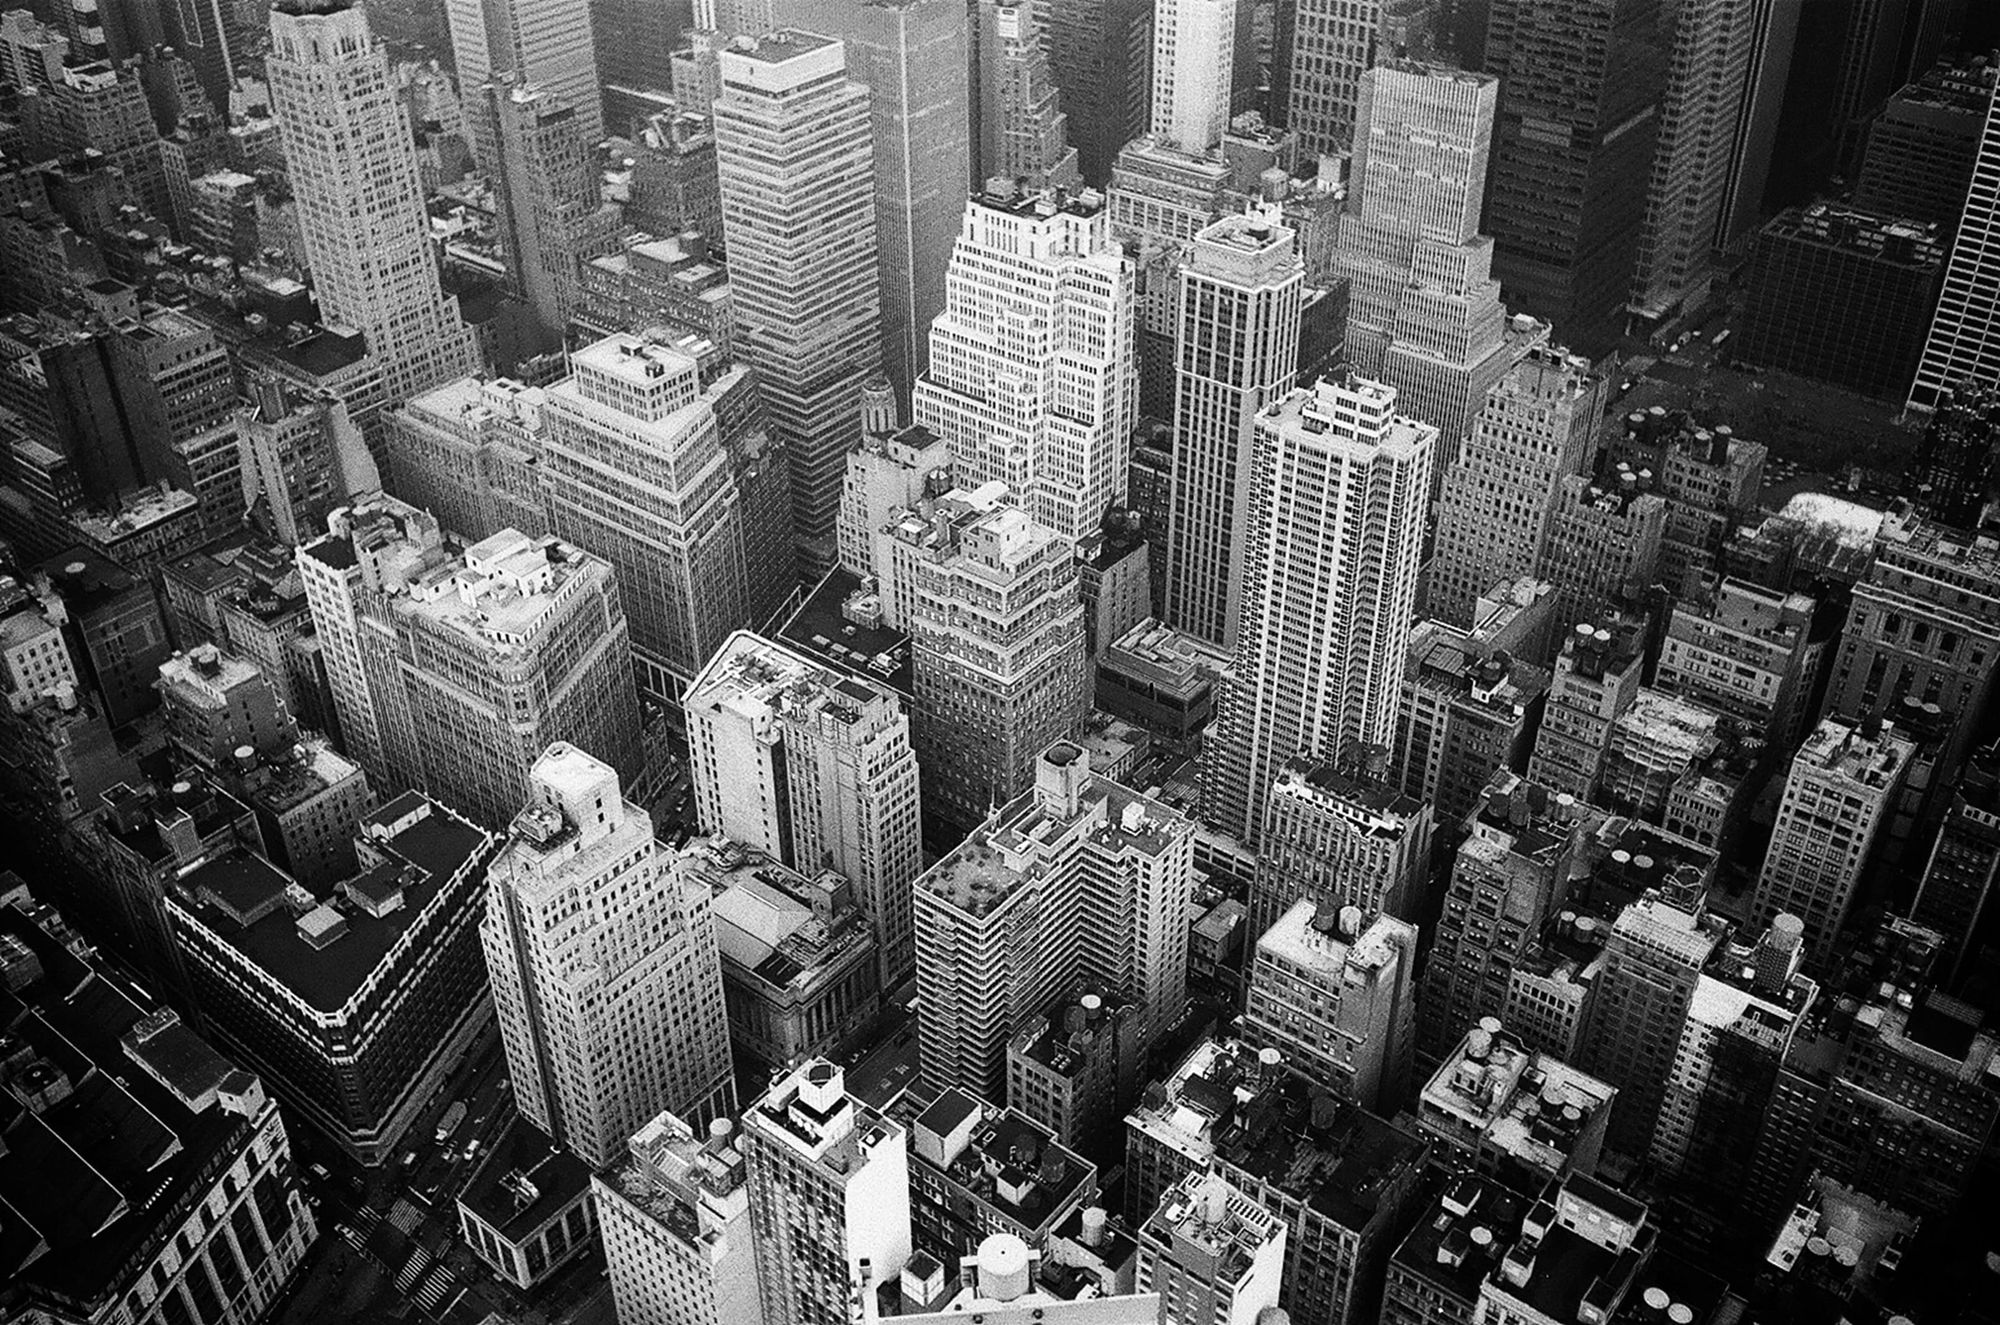 noir-city-from-above